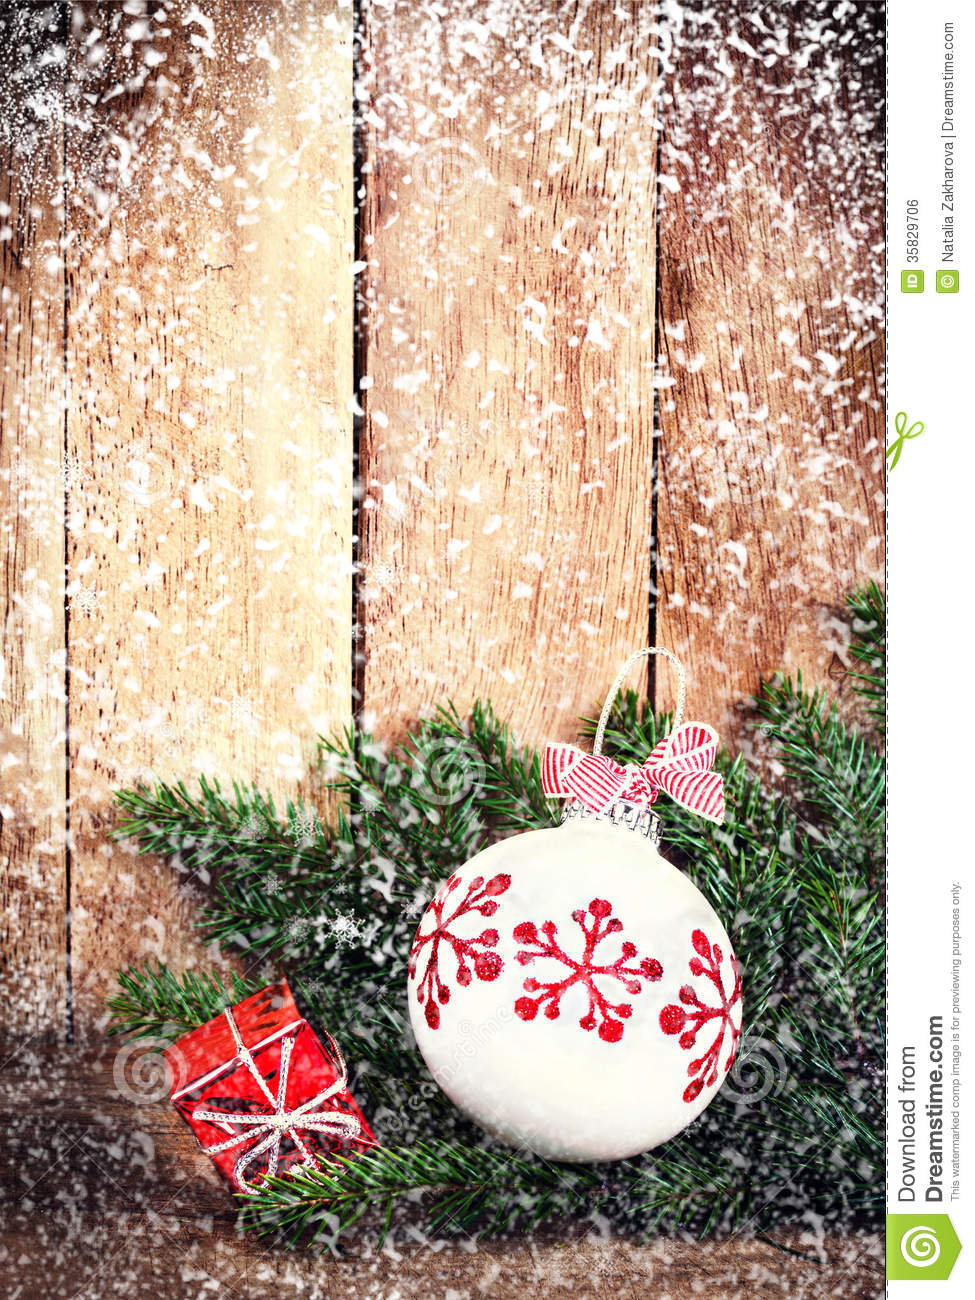 Free Download Of Christmas Wallpaper With Snow Falling Christmas Ornaments With Fir Tree Branch Over Wood Wall